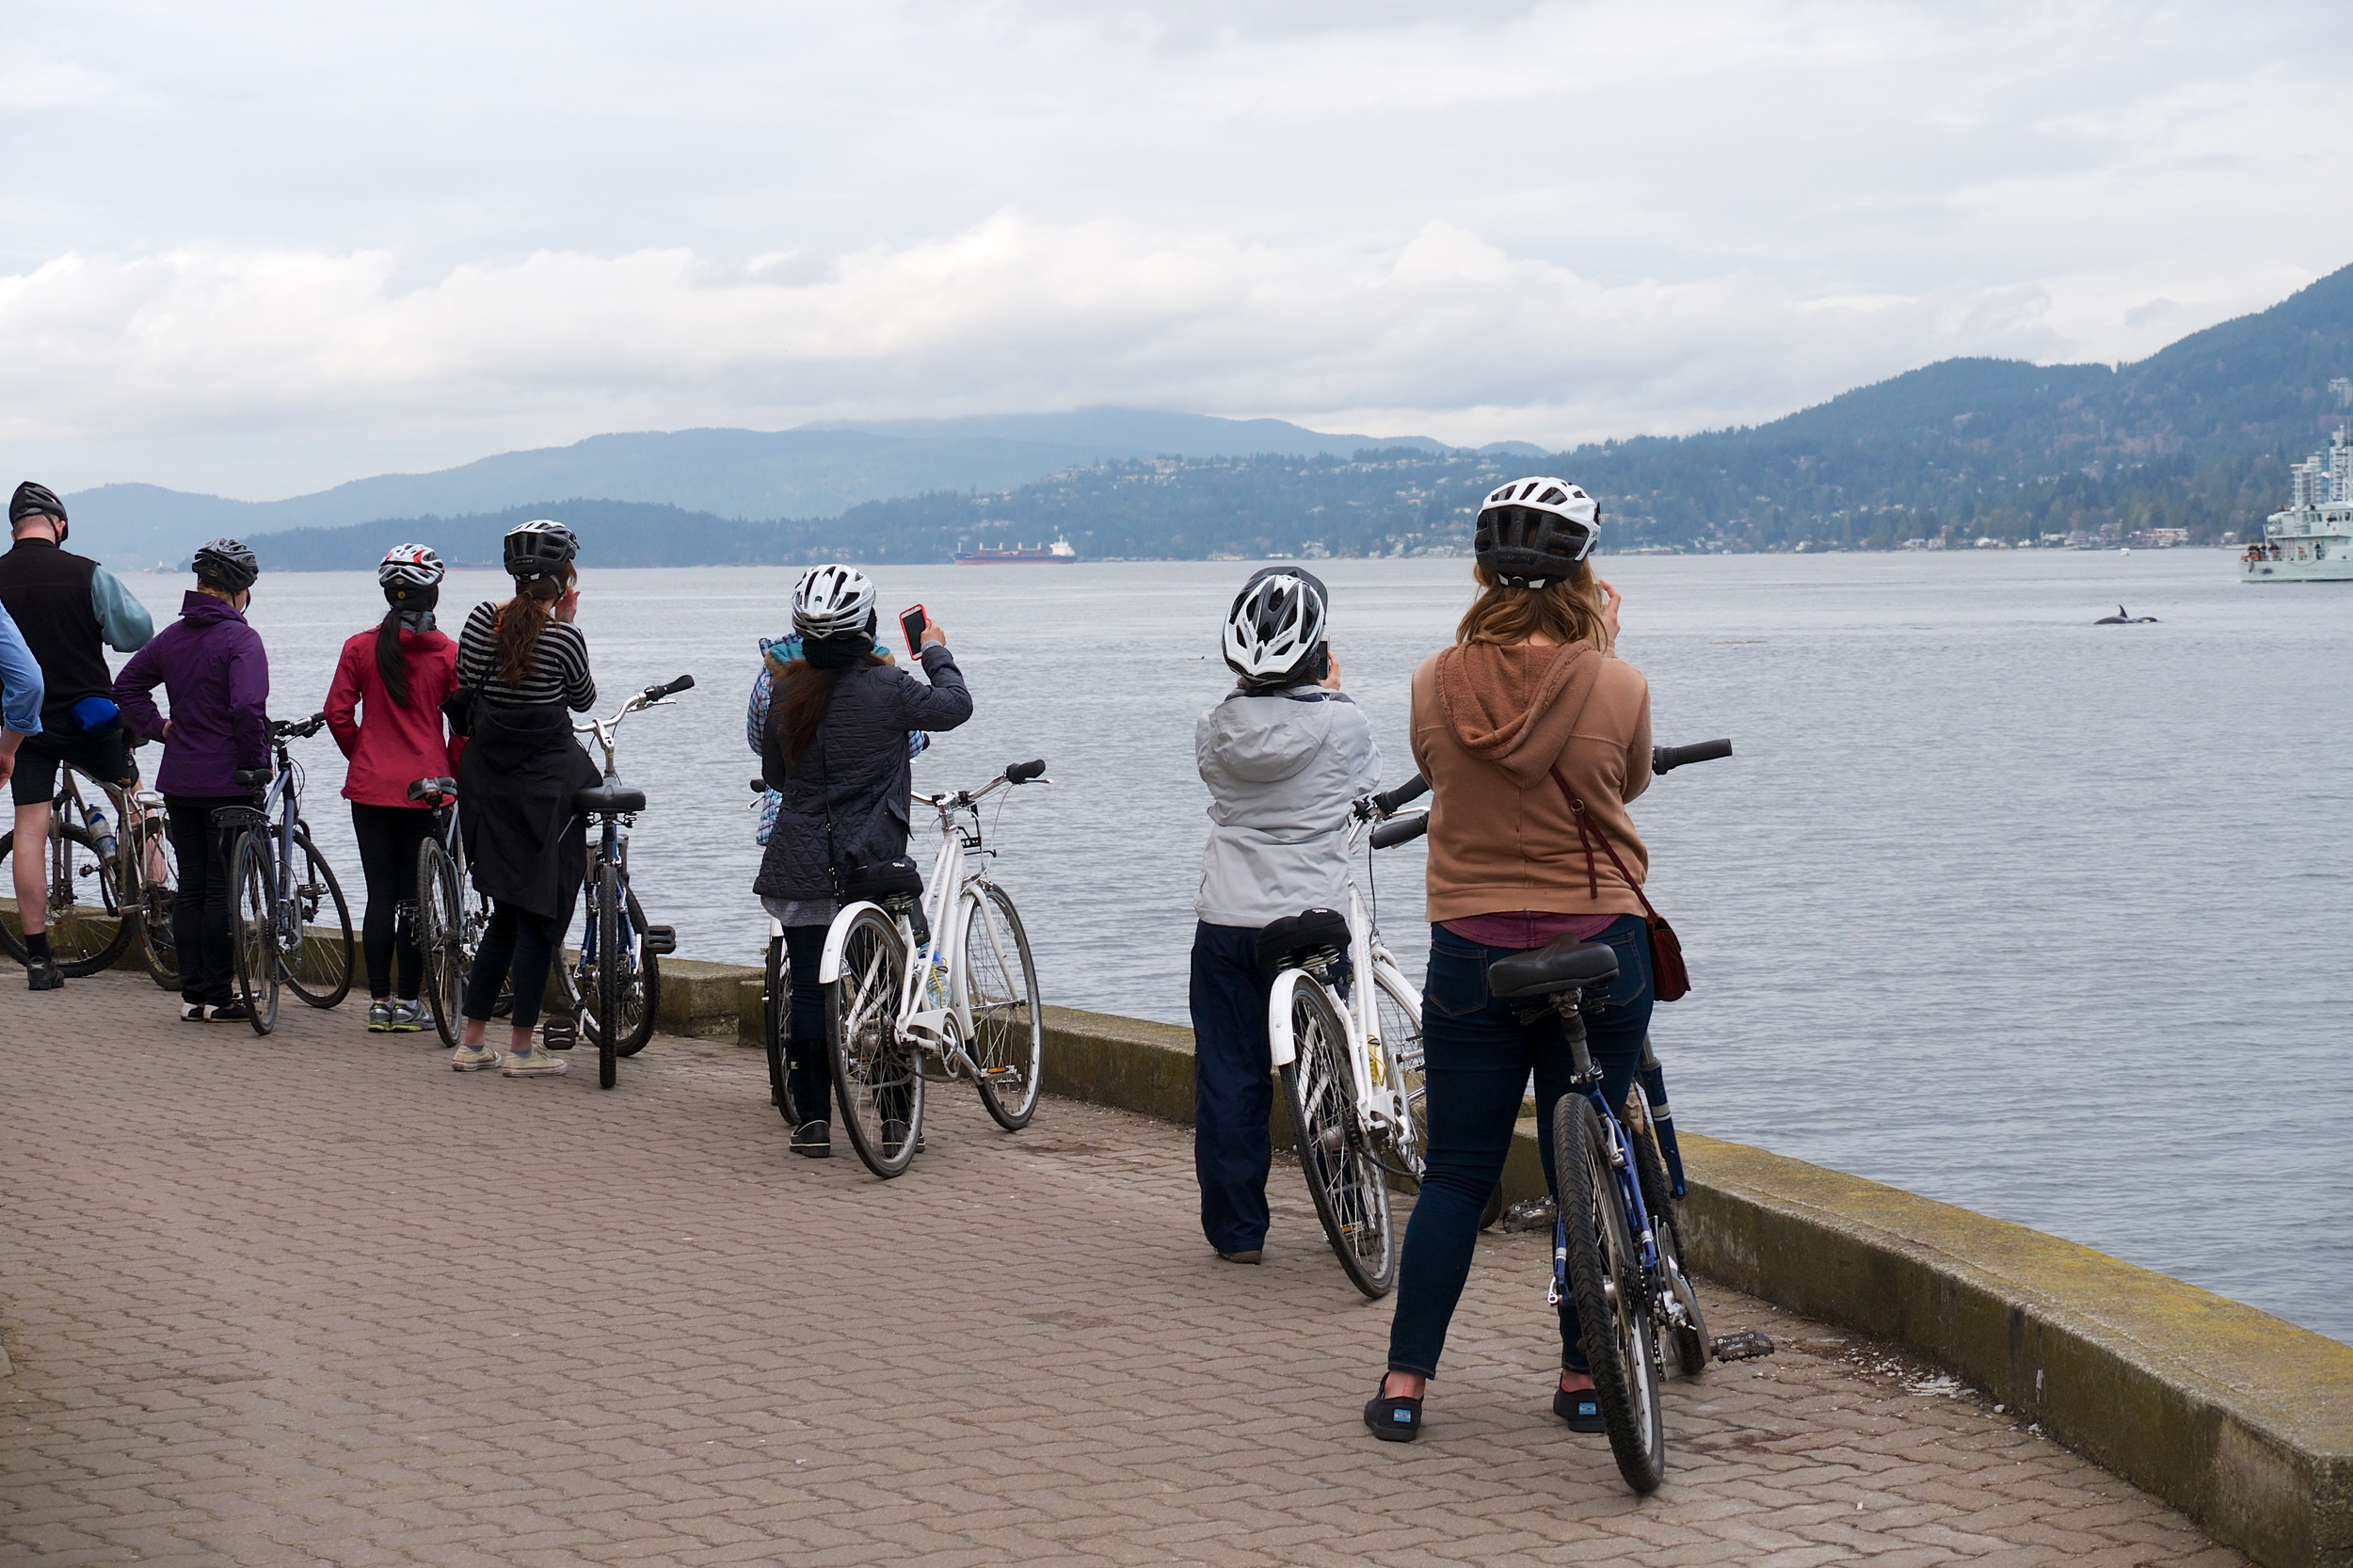 Bikers taking pictures of the orcas